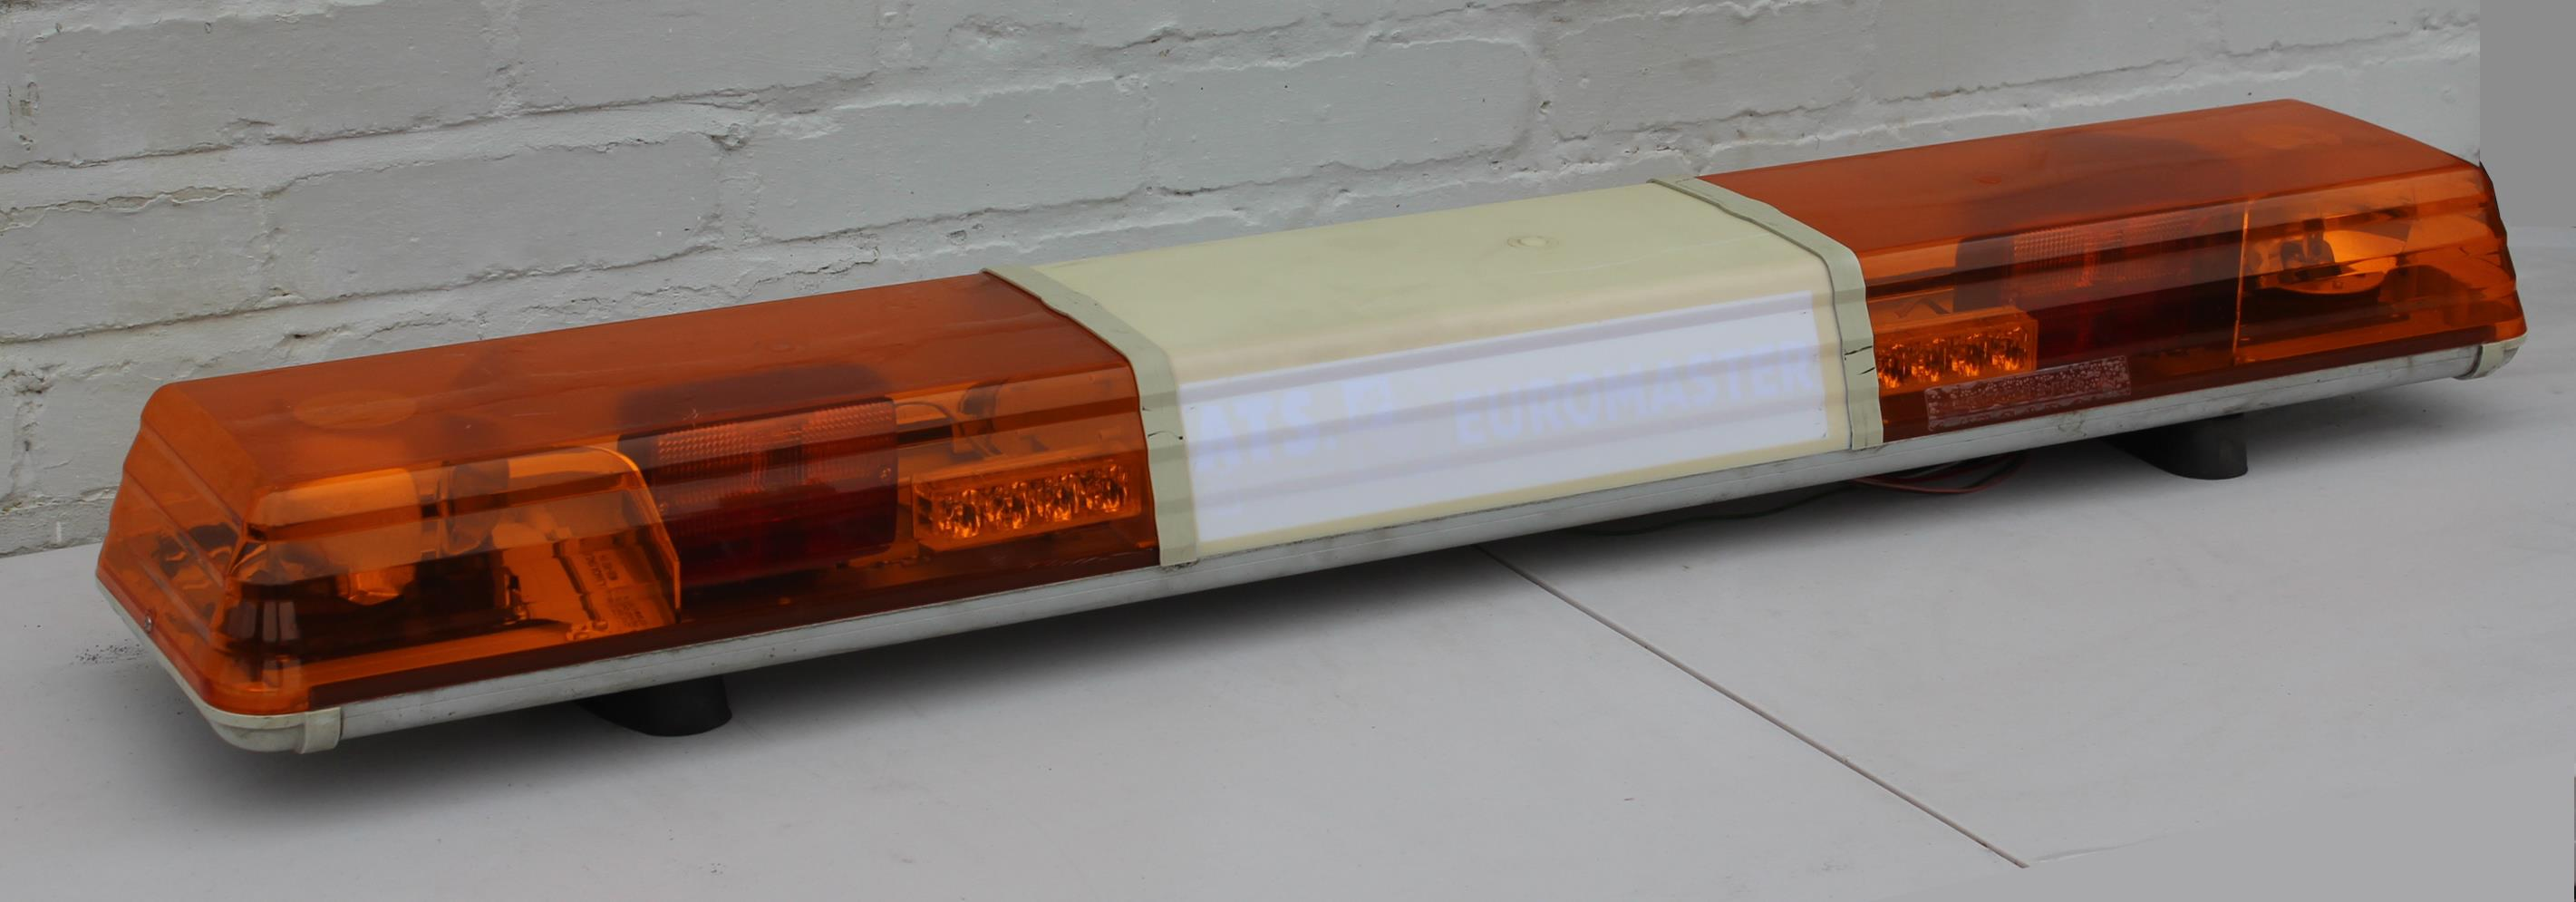 "48"" Rotator/LED lightbar by Vision Alert"